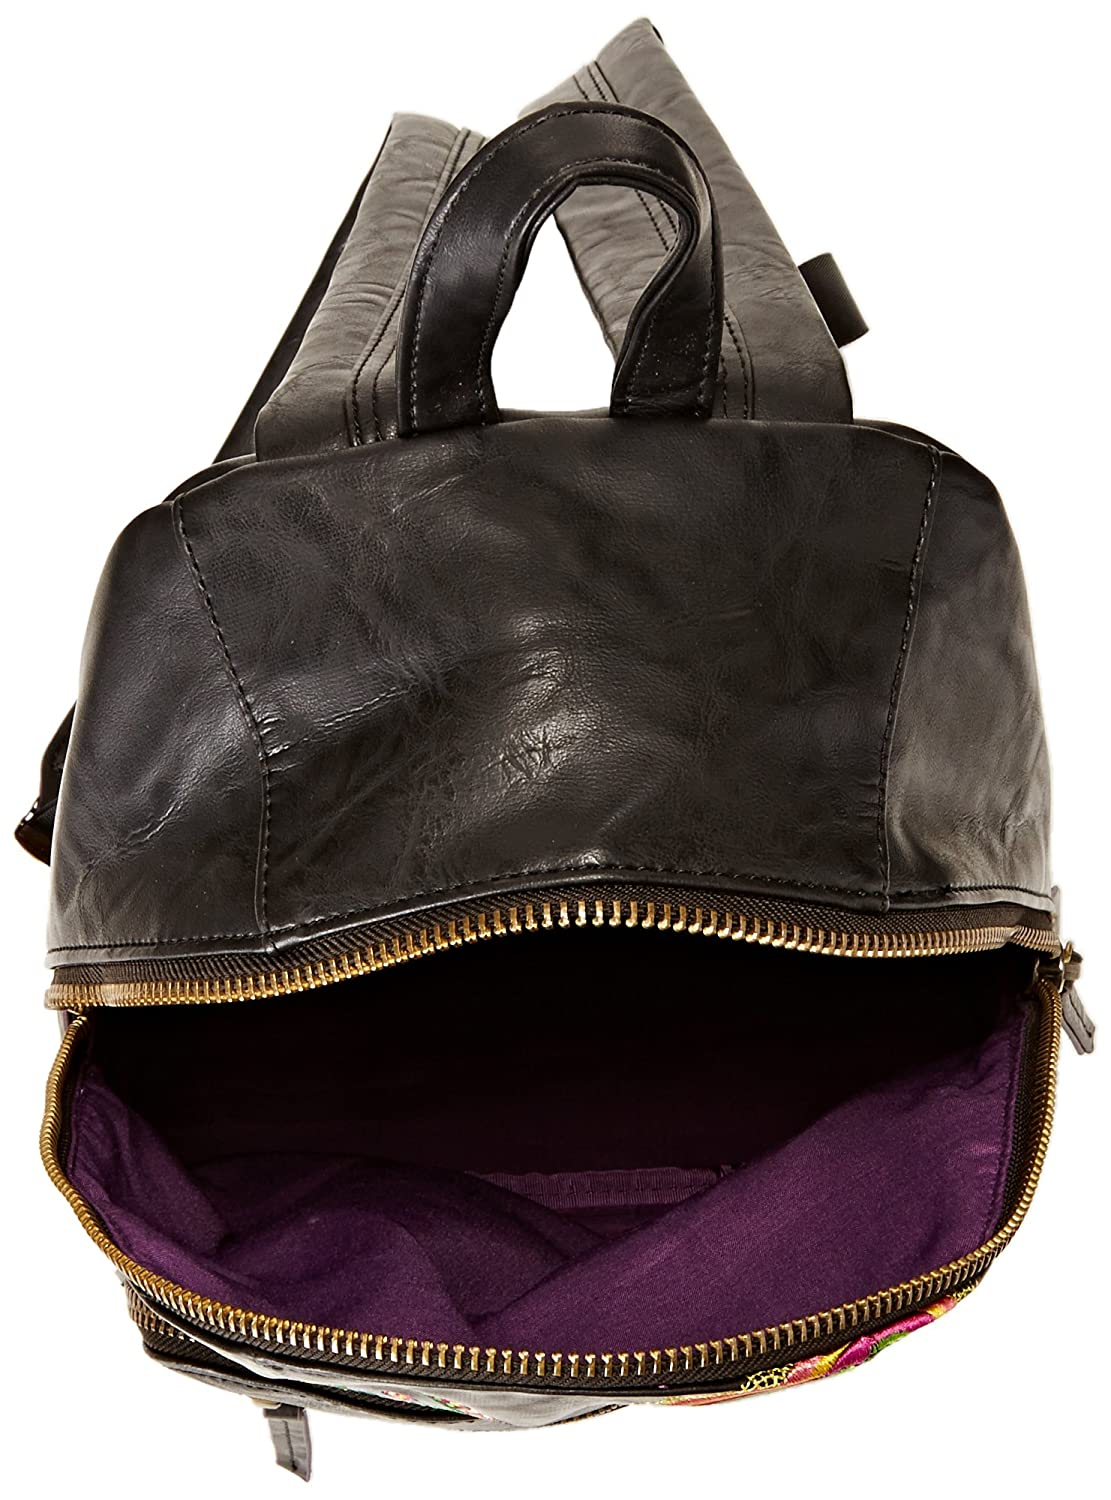 Desigual Women S Bols Lima Audrey Backpack Handbags Brown Size